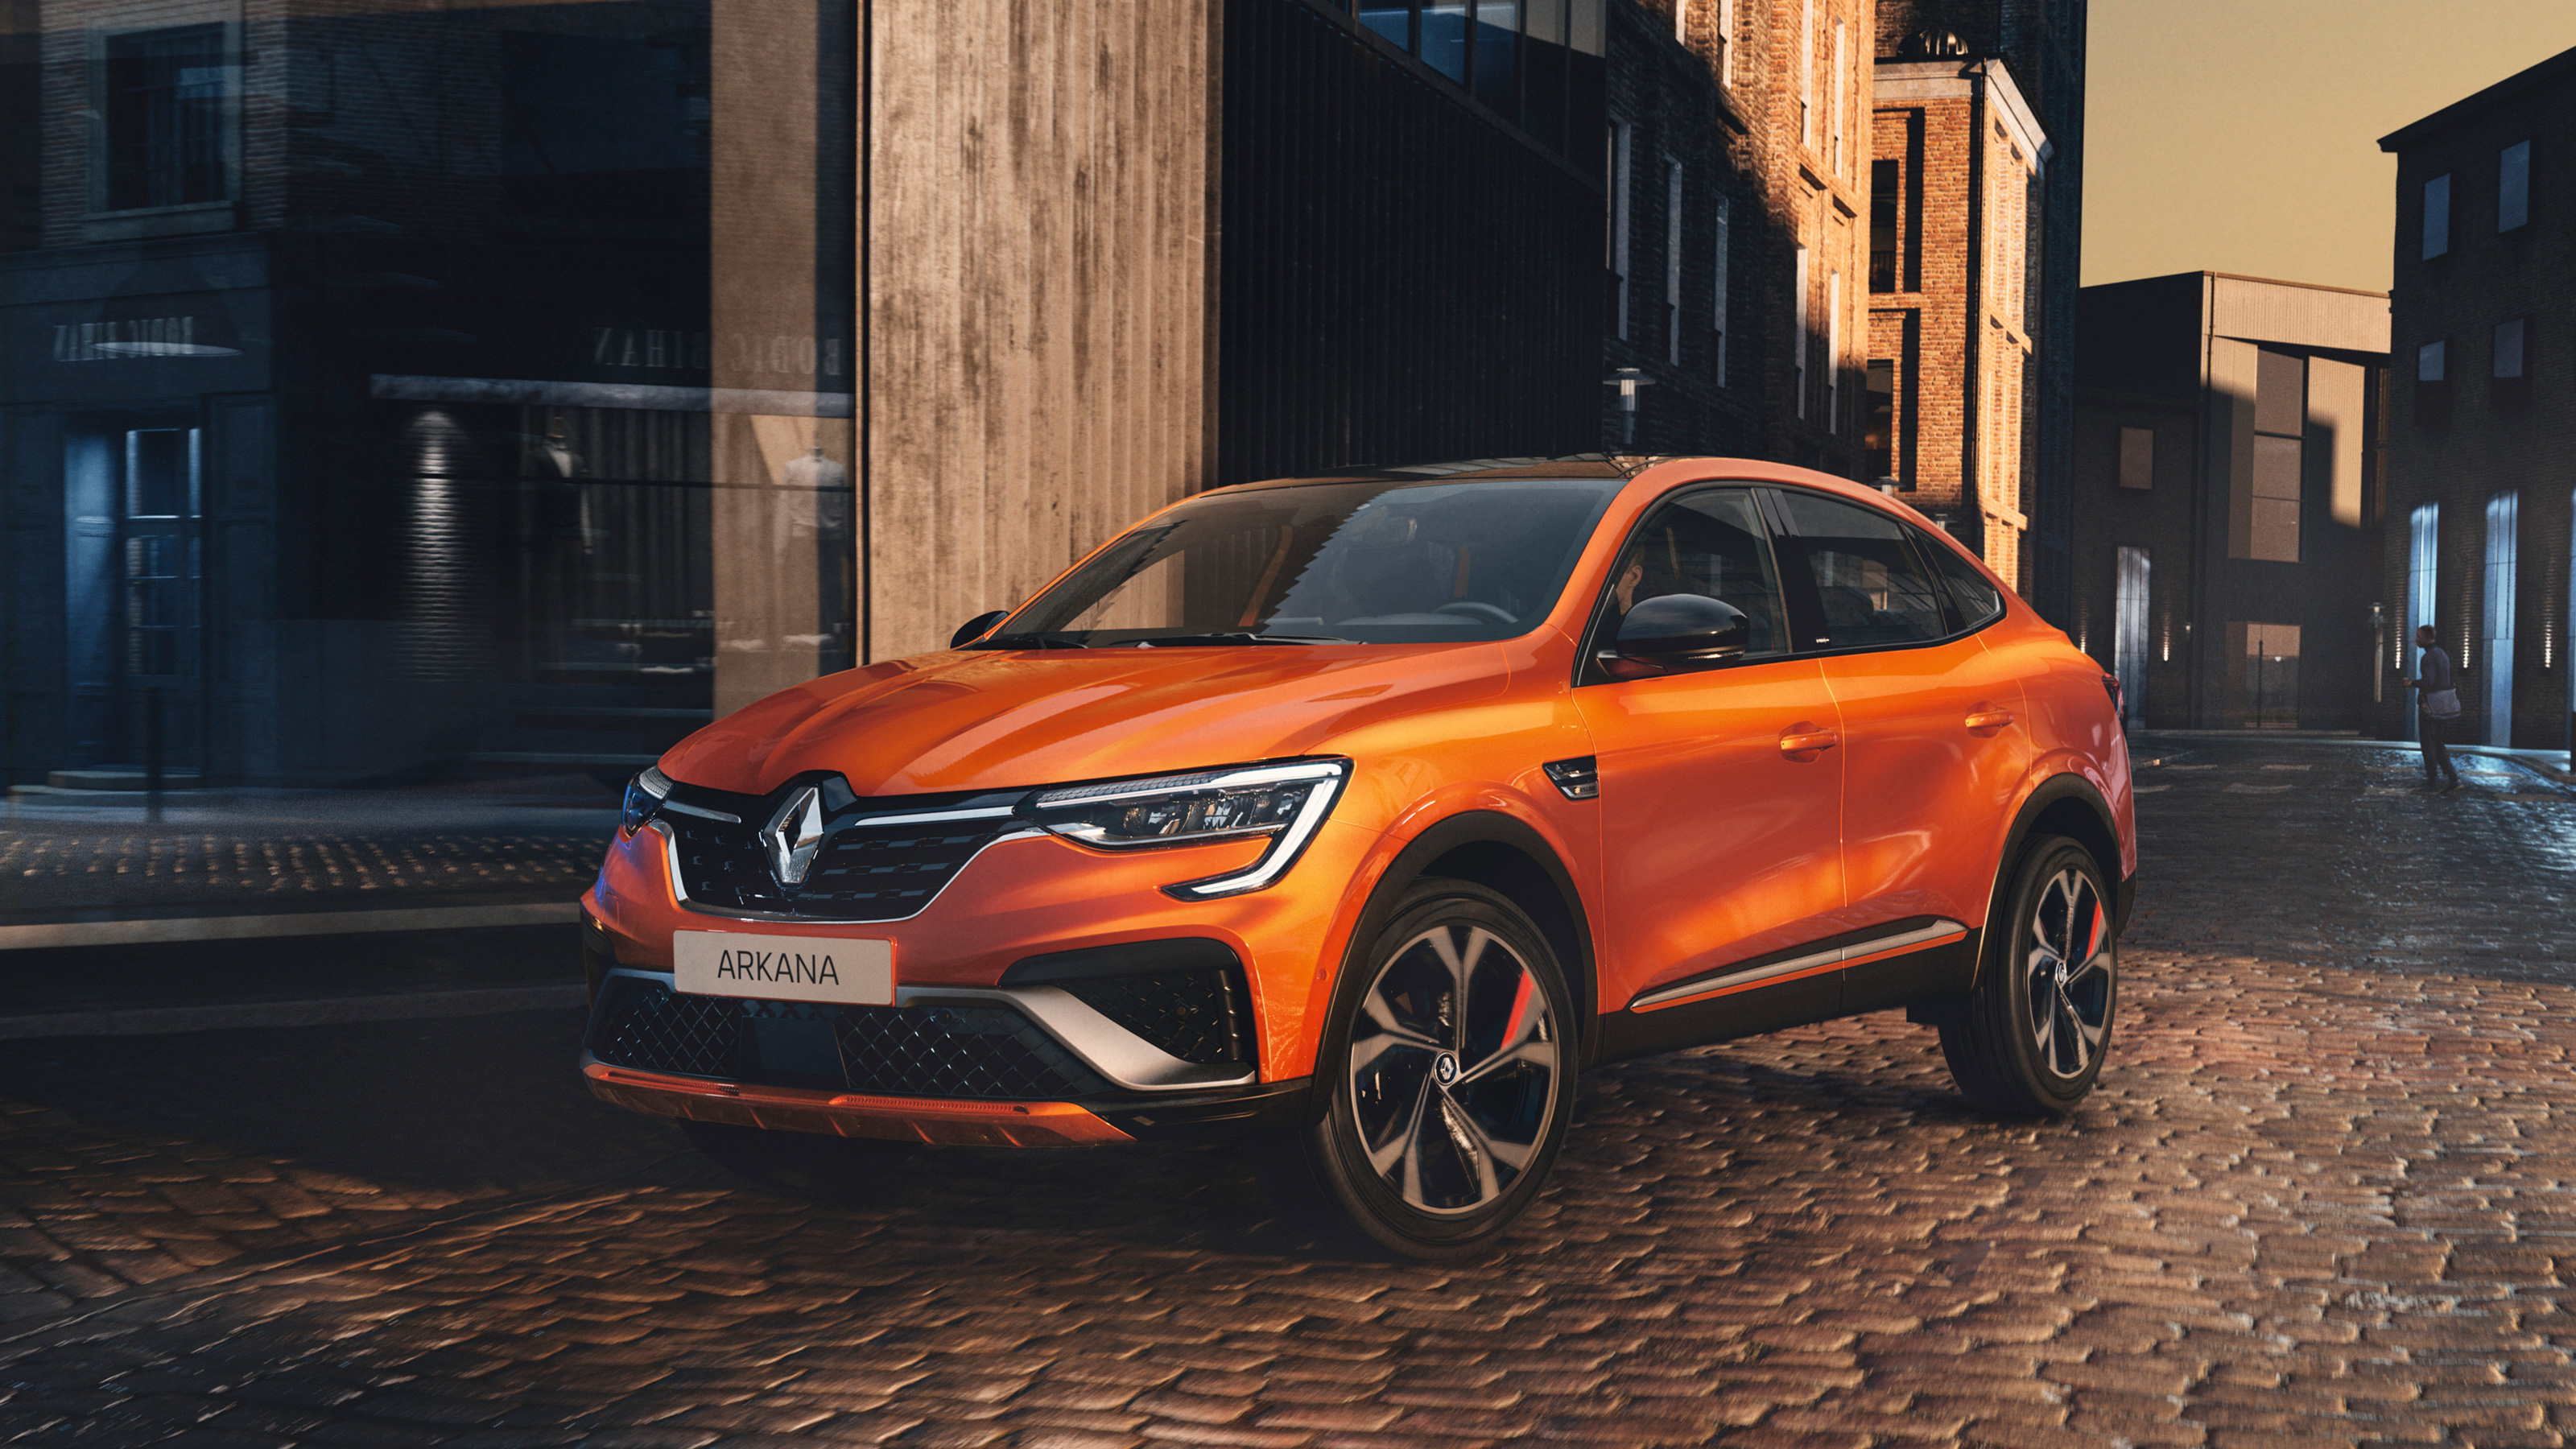 Renault launches Arkana coupe crossover at Moscow motor ... |Renault Arkana